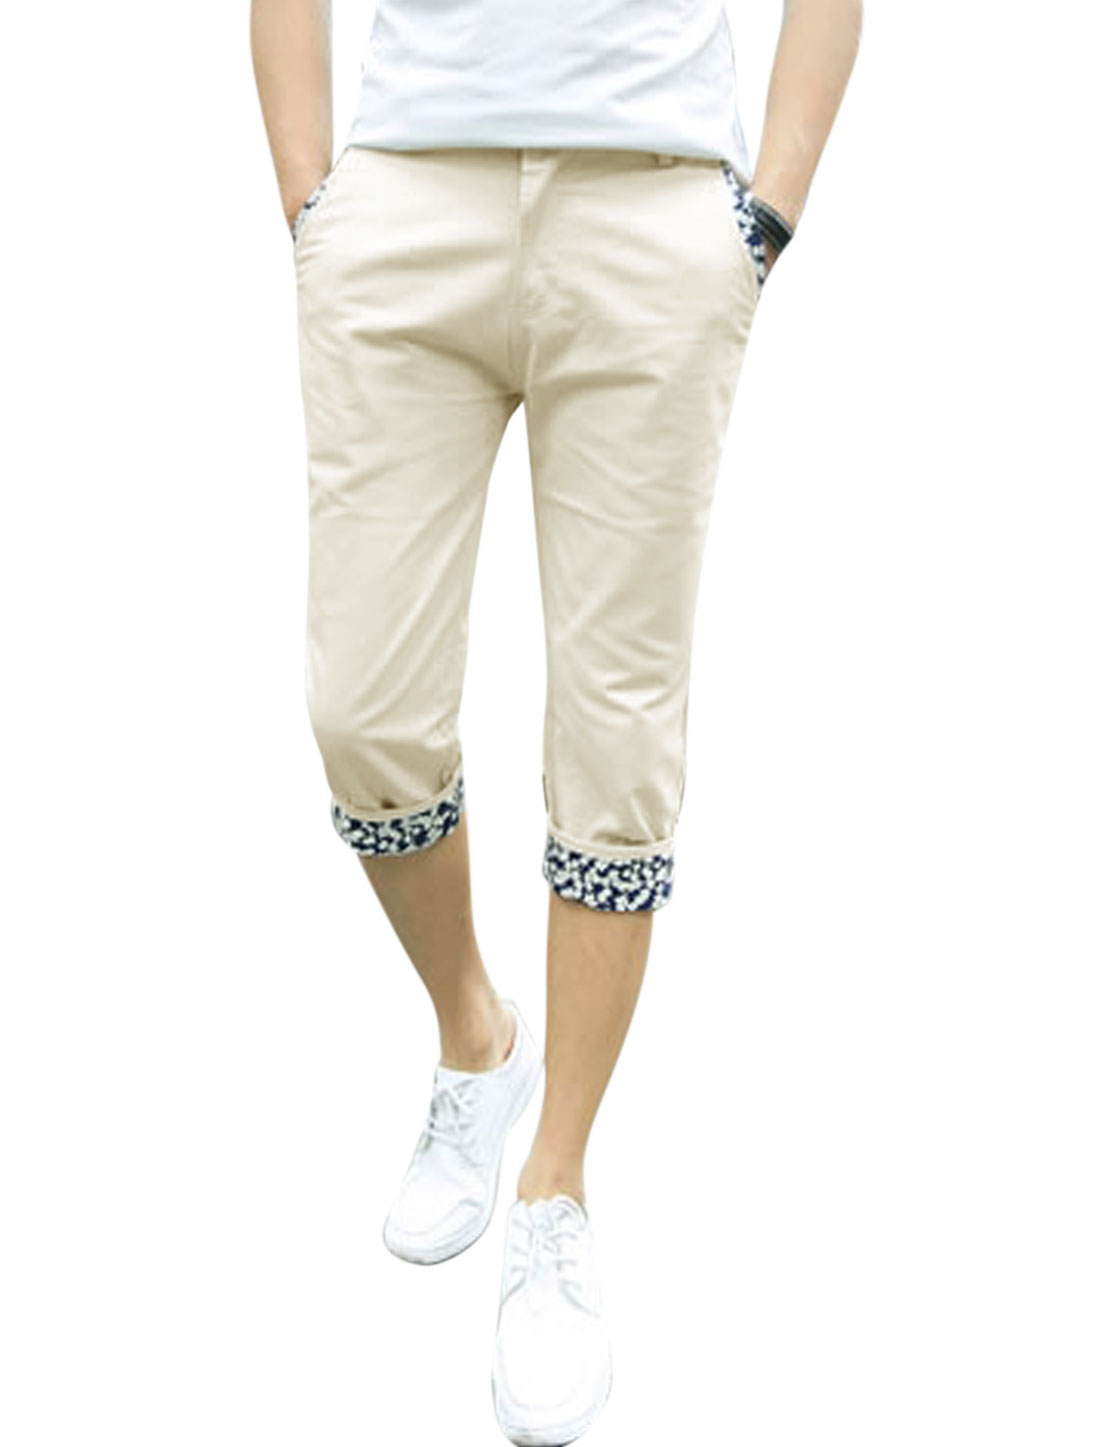 Men Mid Rise Zip Fly Pockets Casual Capris Pants Beige W34